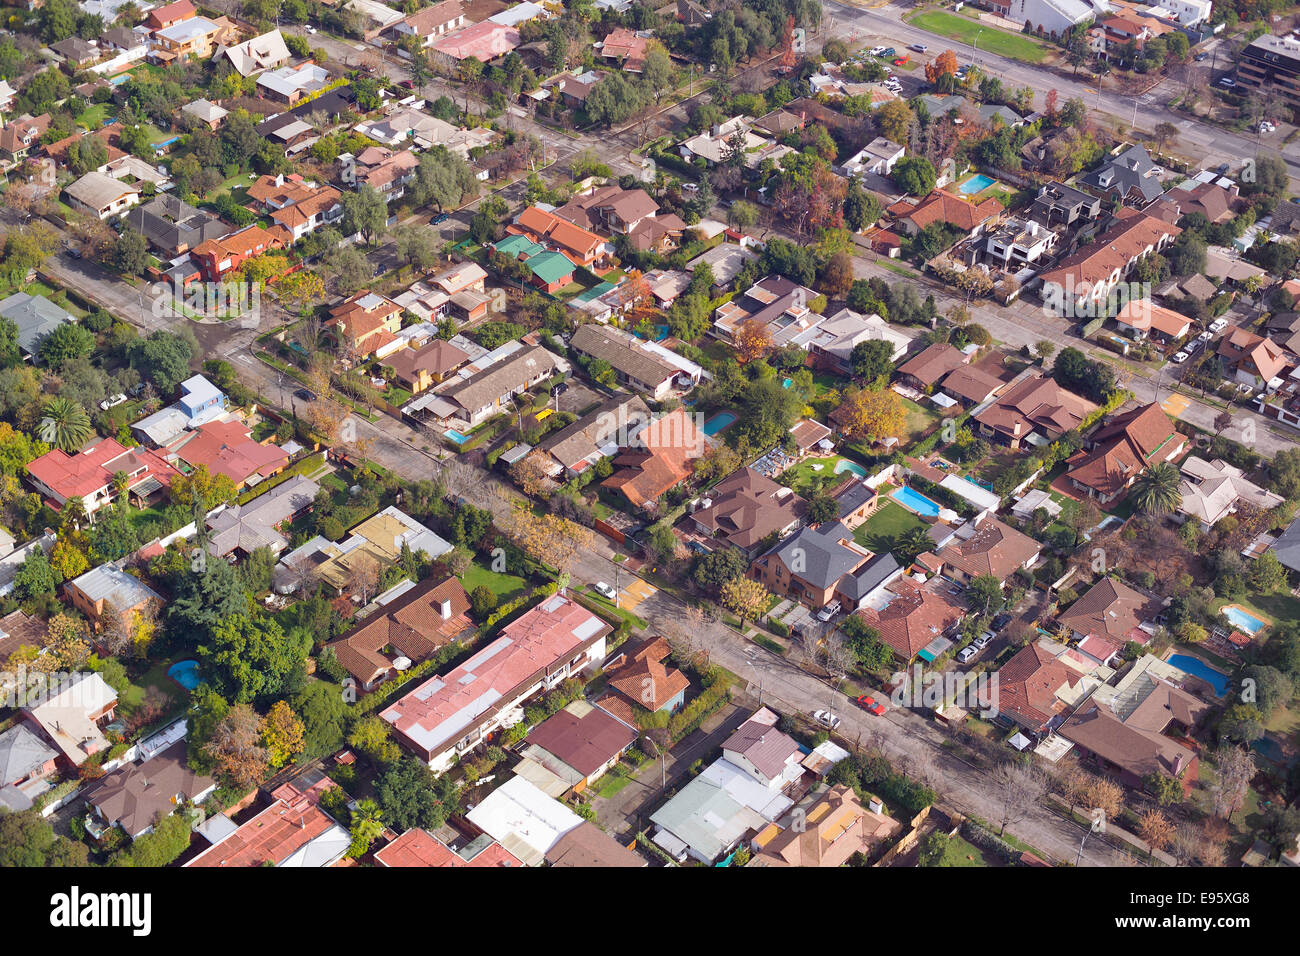 Aerial view of a wealthy neighborhood in Santiago de Chile - Stock Image